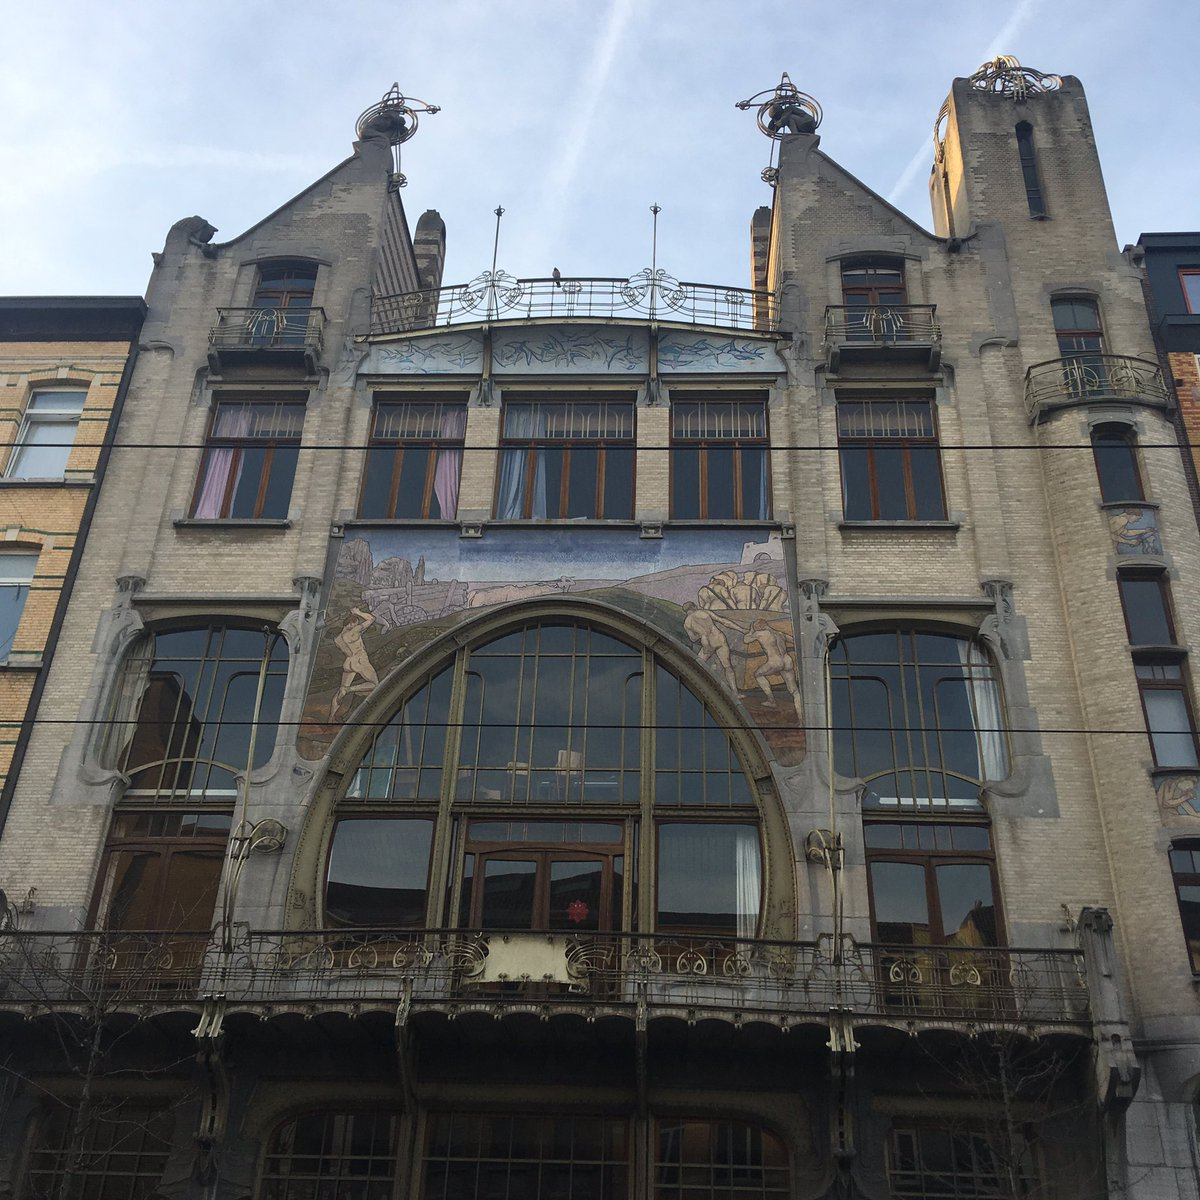 Art Nouveau in Belgium is not only #victorhorta and #brussels Let's visit #Antwerp next time that you go to #belgium #artnouveau #travel<br>http://pic.twitter.com/io49u6ca71